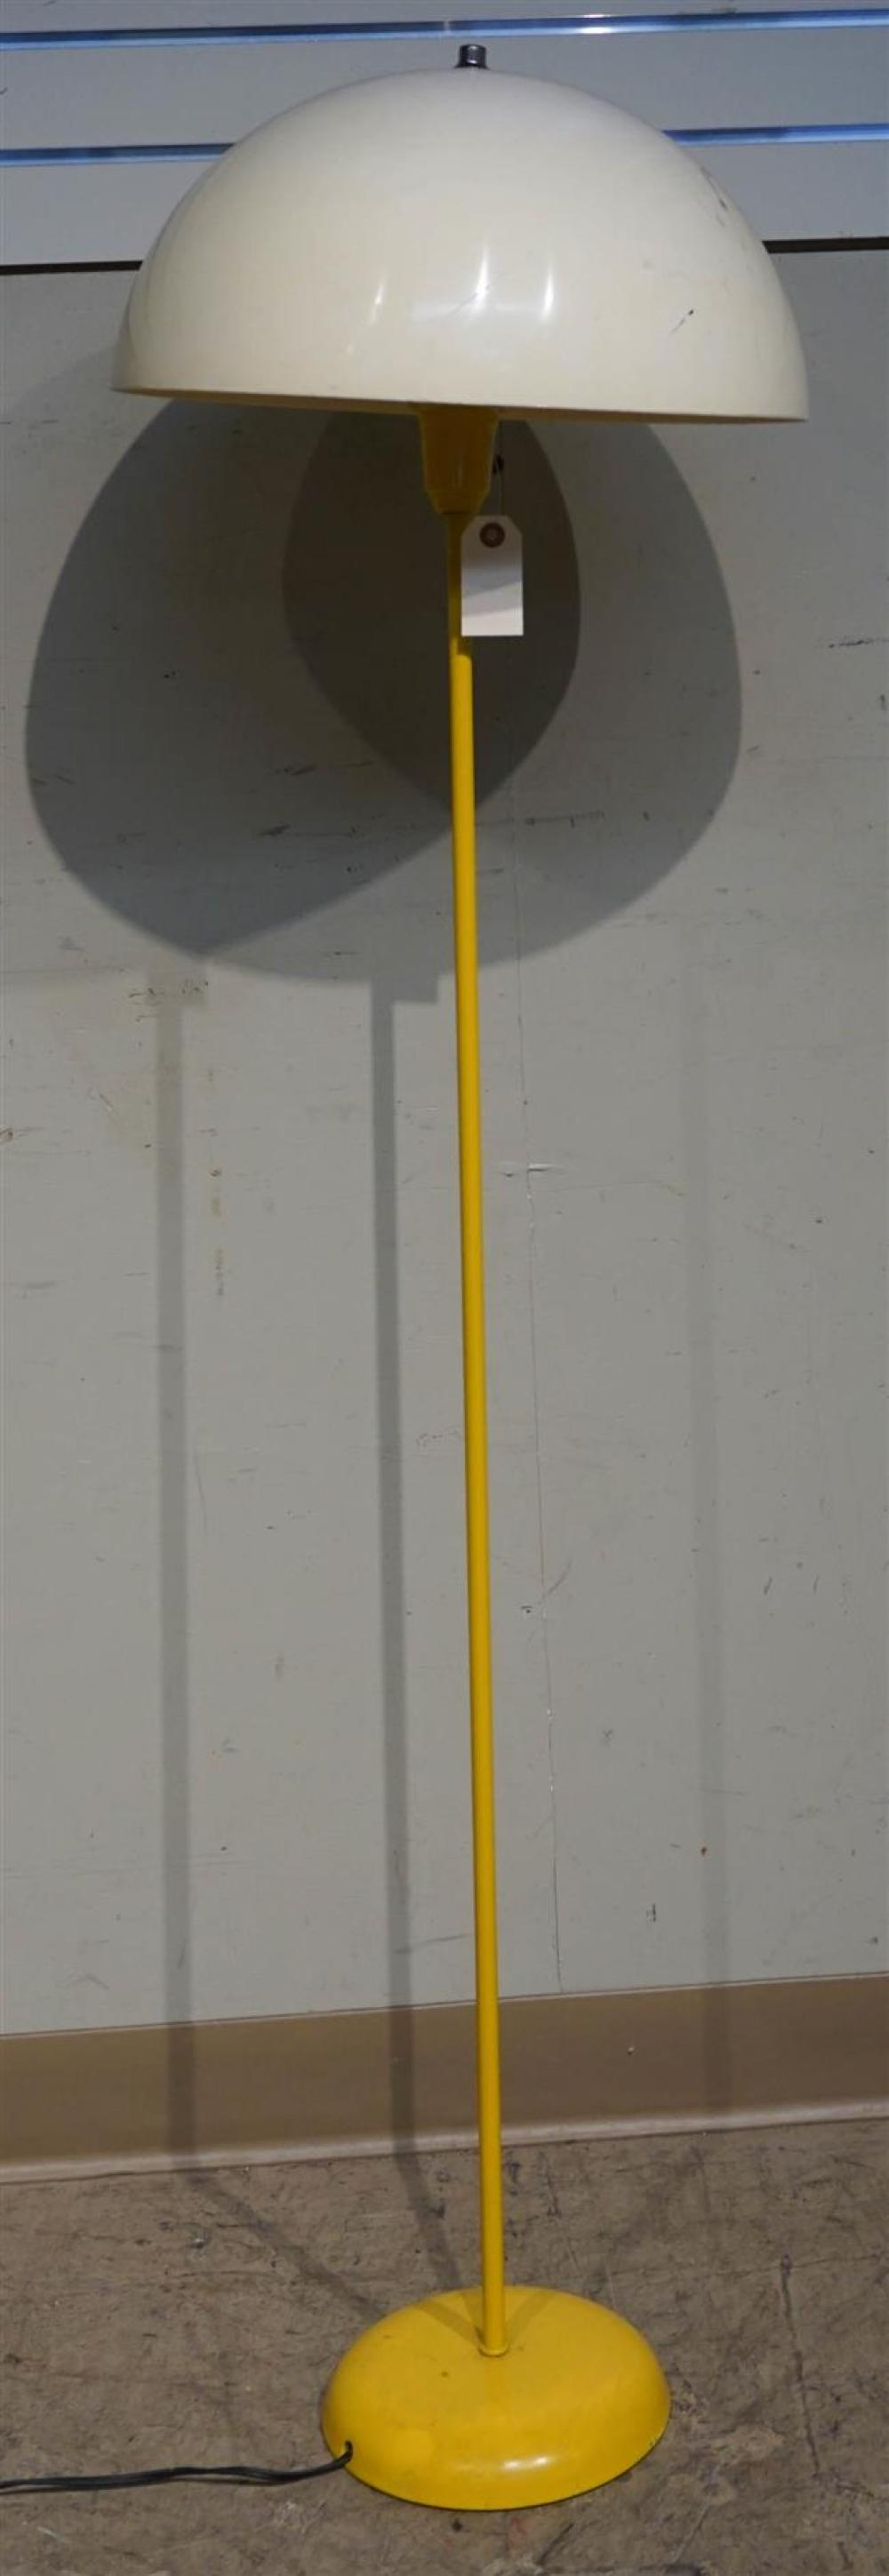 Yellow Enameled Metal Floor Lamp with Plastic Mushroom Shade; 55 Inches Overall Height